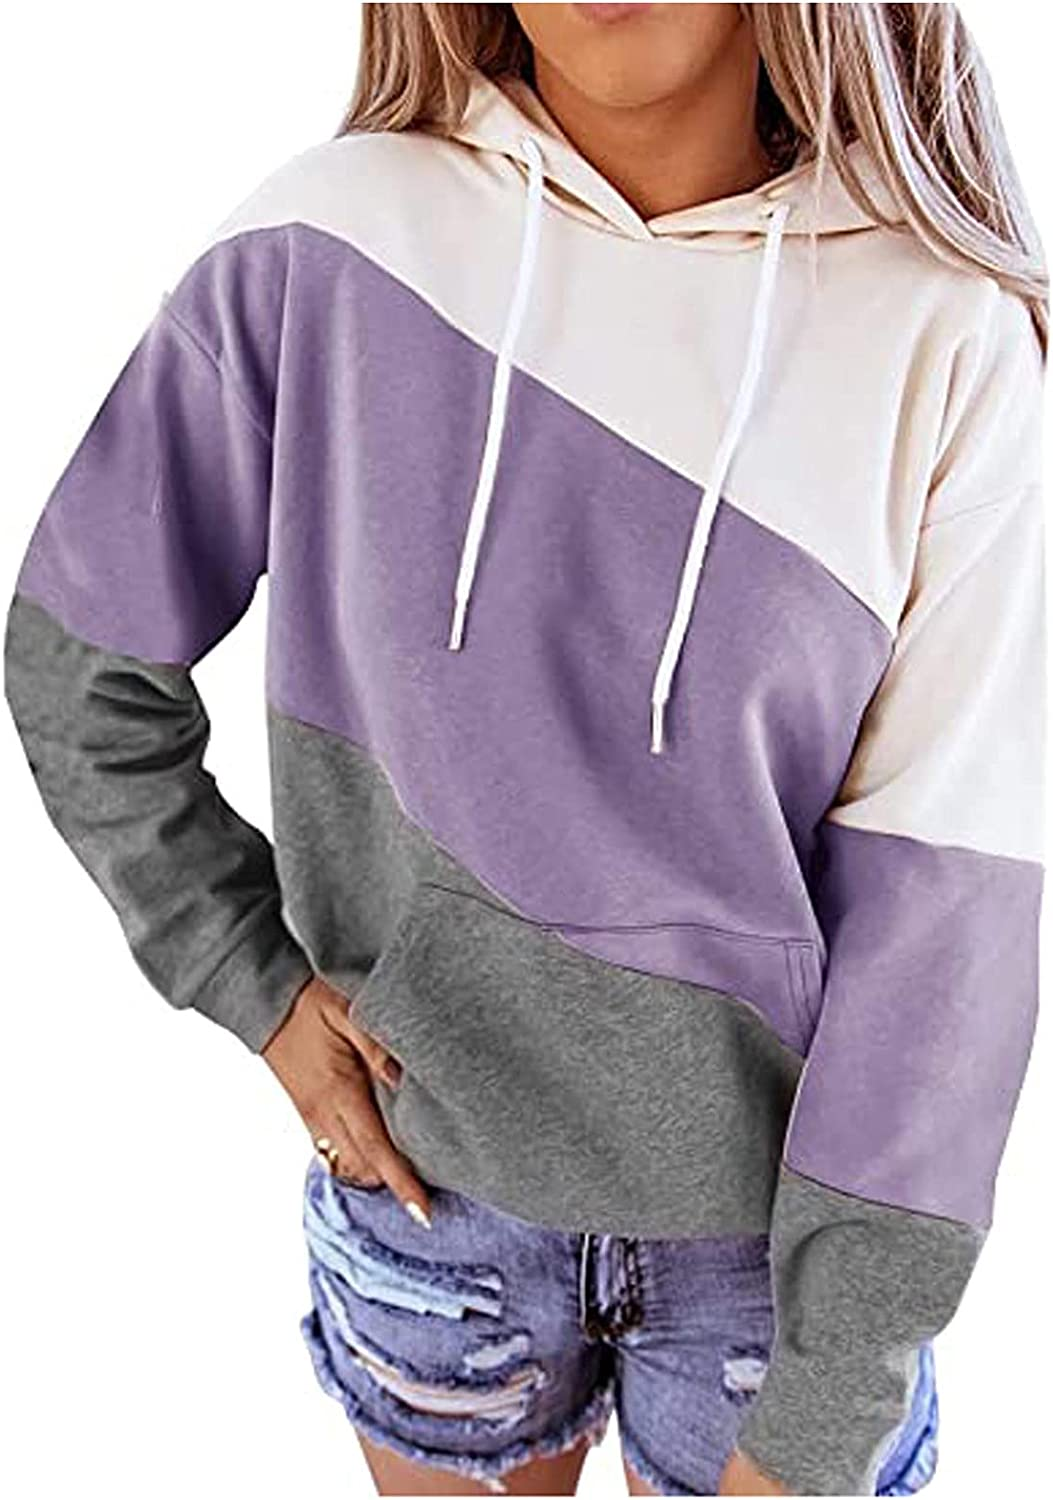 Workout Tops for Women, Color Block Hooded Sweaters Drawstring Long Sleeve Hoodies Casual Sweatshirts Pocket Pullover